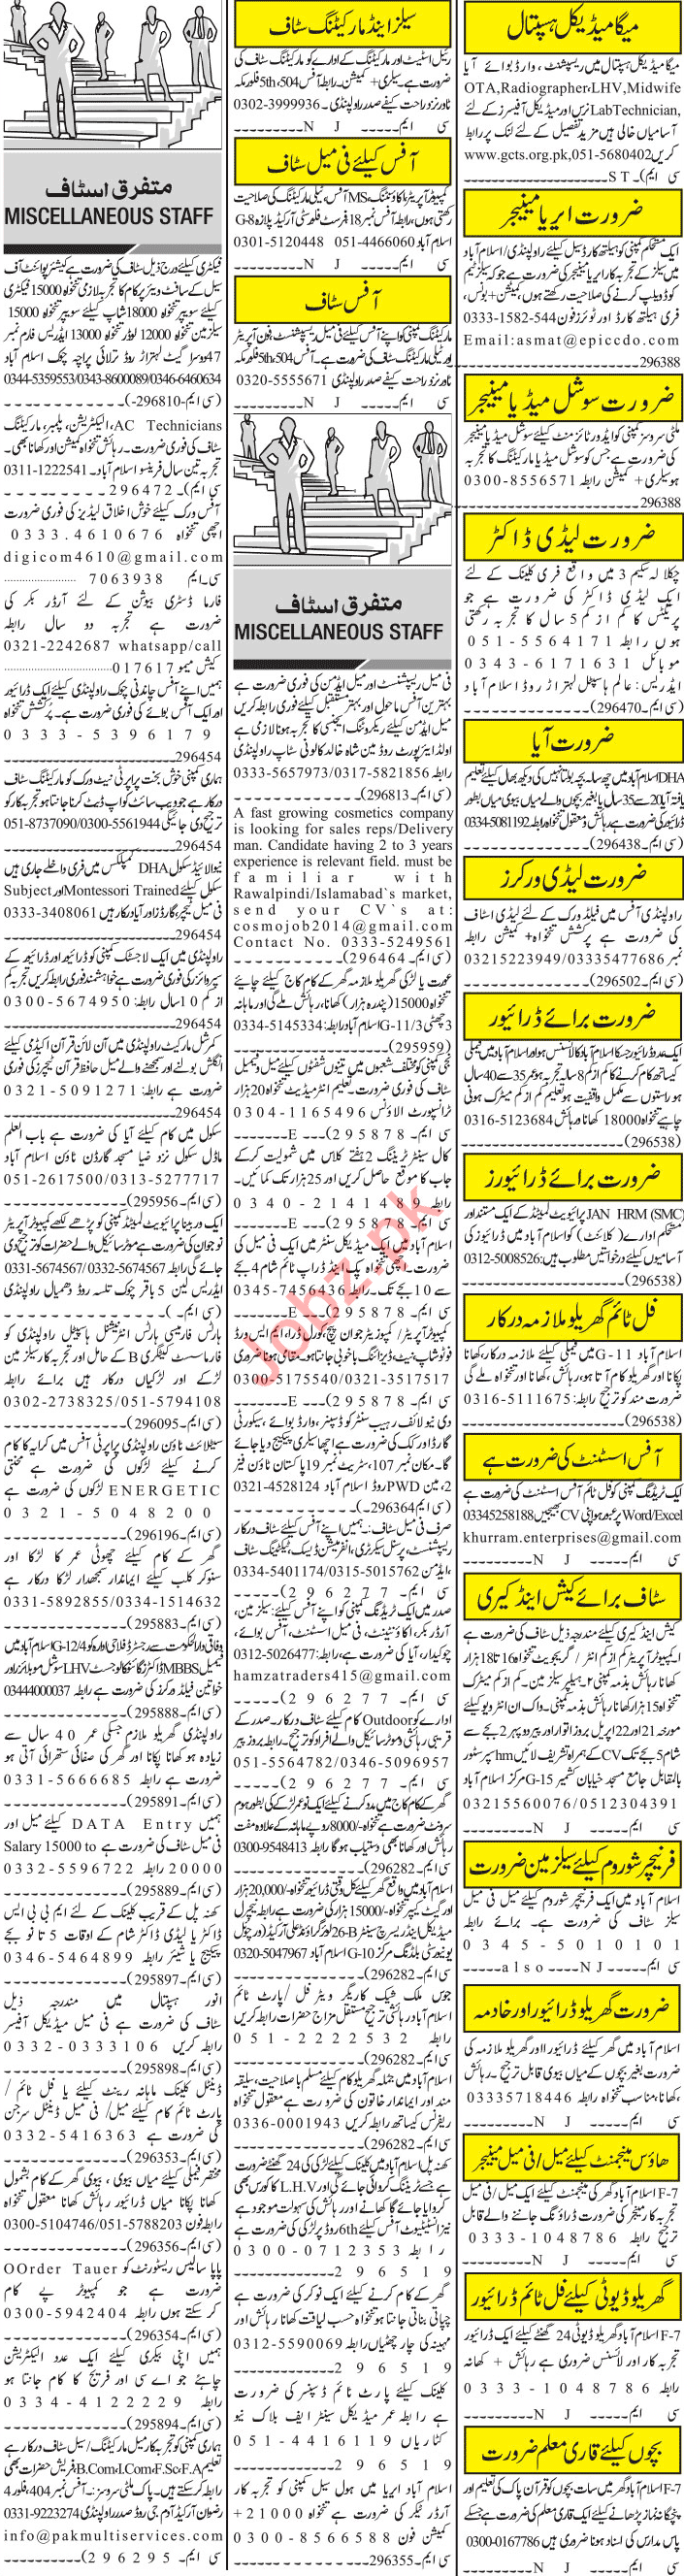 Jang Sunday Classified Ads 21st April 2019 Multiple Staff